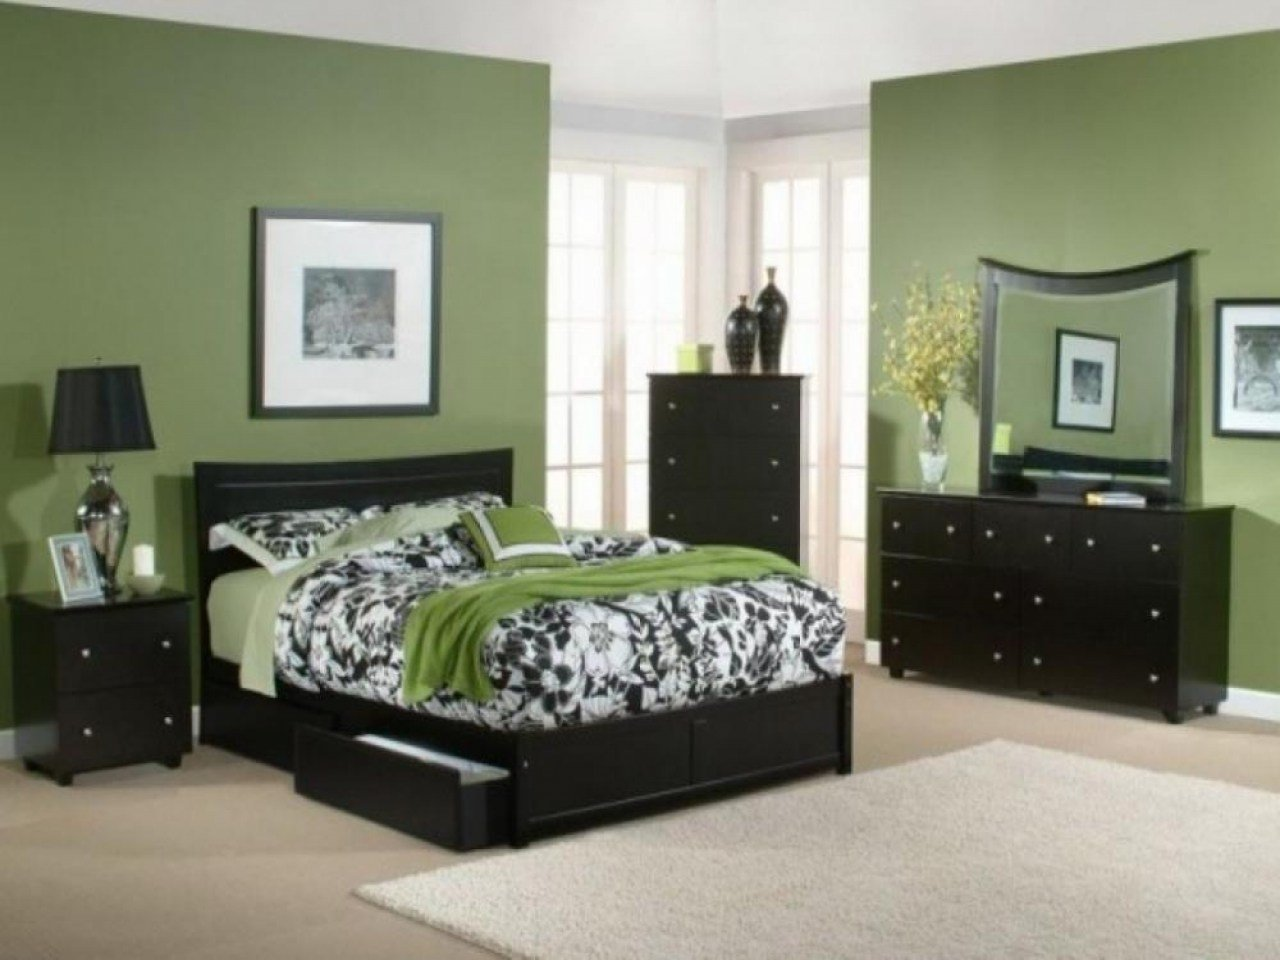 Best Bedroom Color Green Master Bedroom Color Scheme Blue And With Pictures